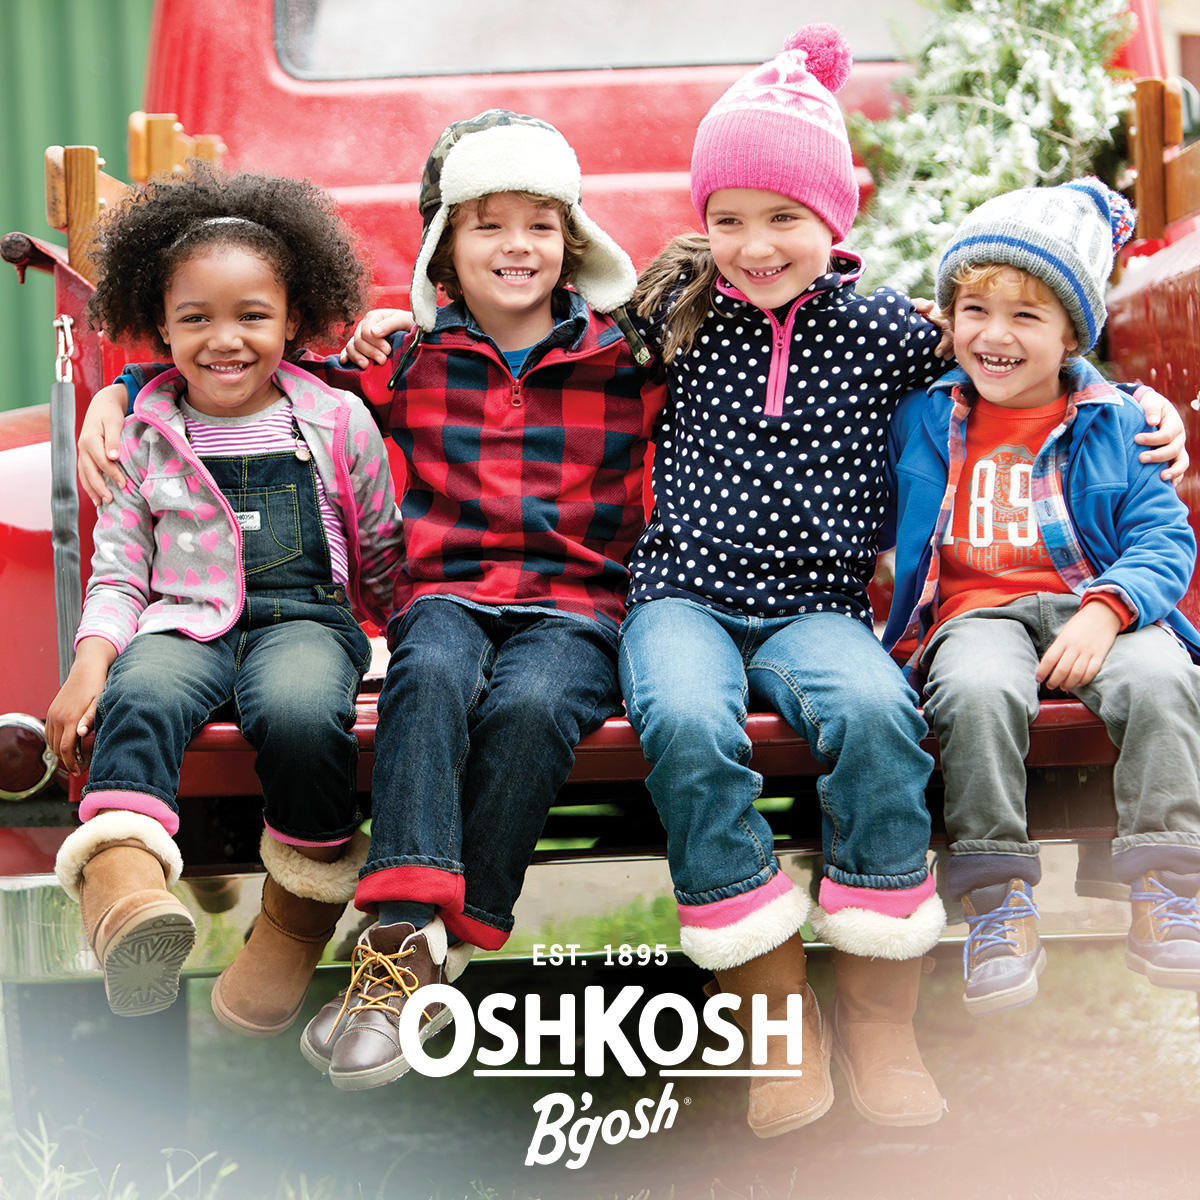 Up to 60% Off + Extra 25% Off Labor Day Sale @ OshKosh BGosh